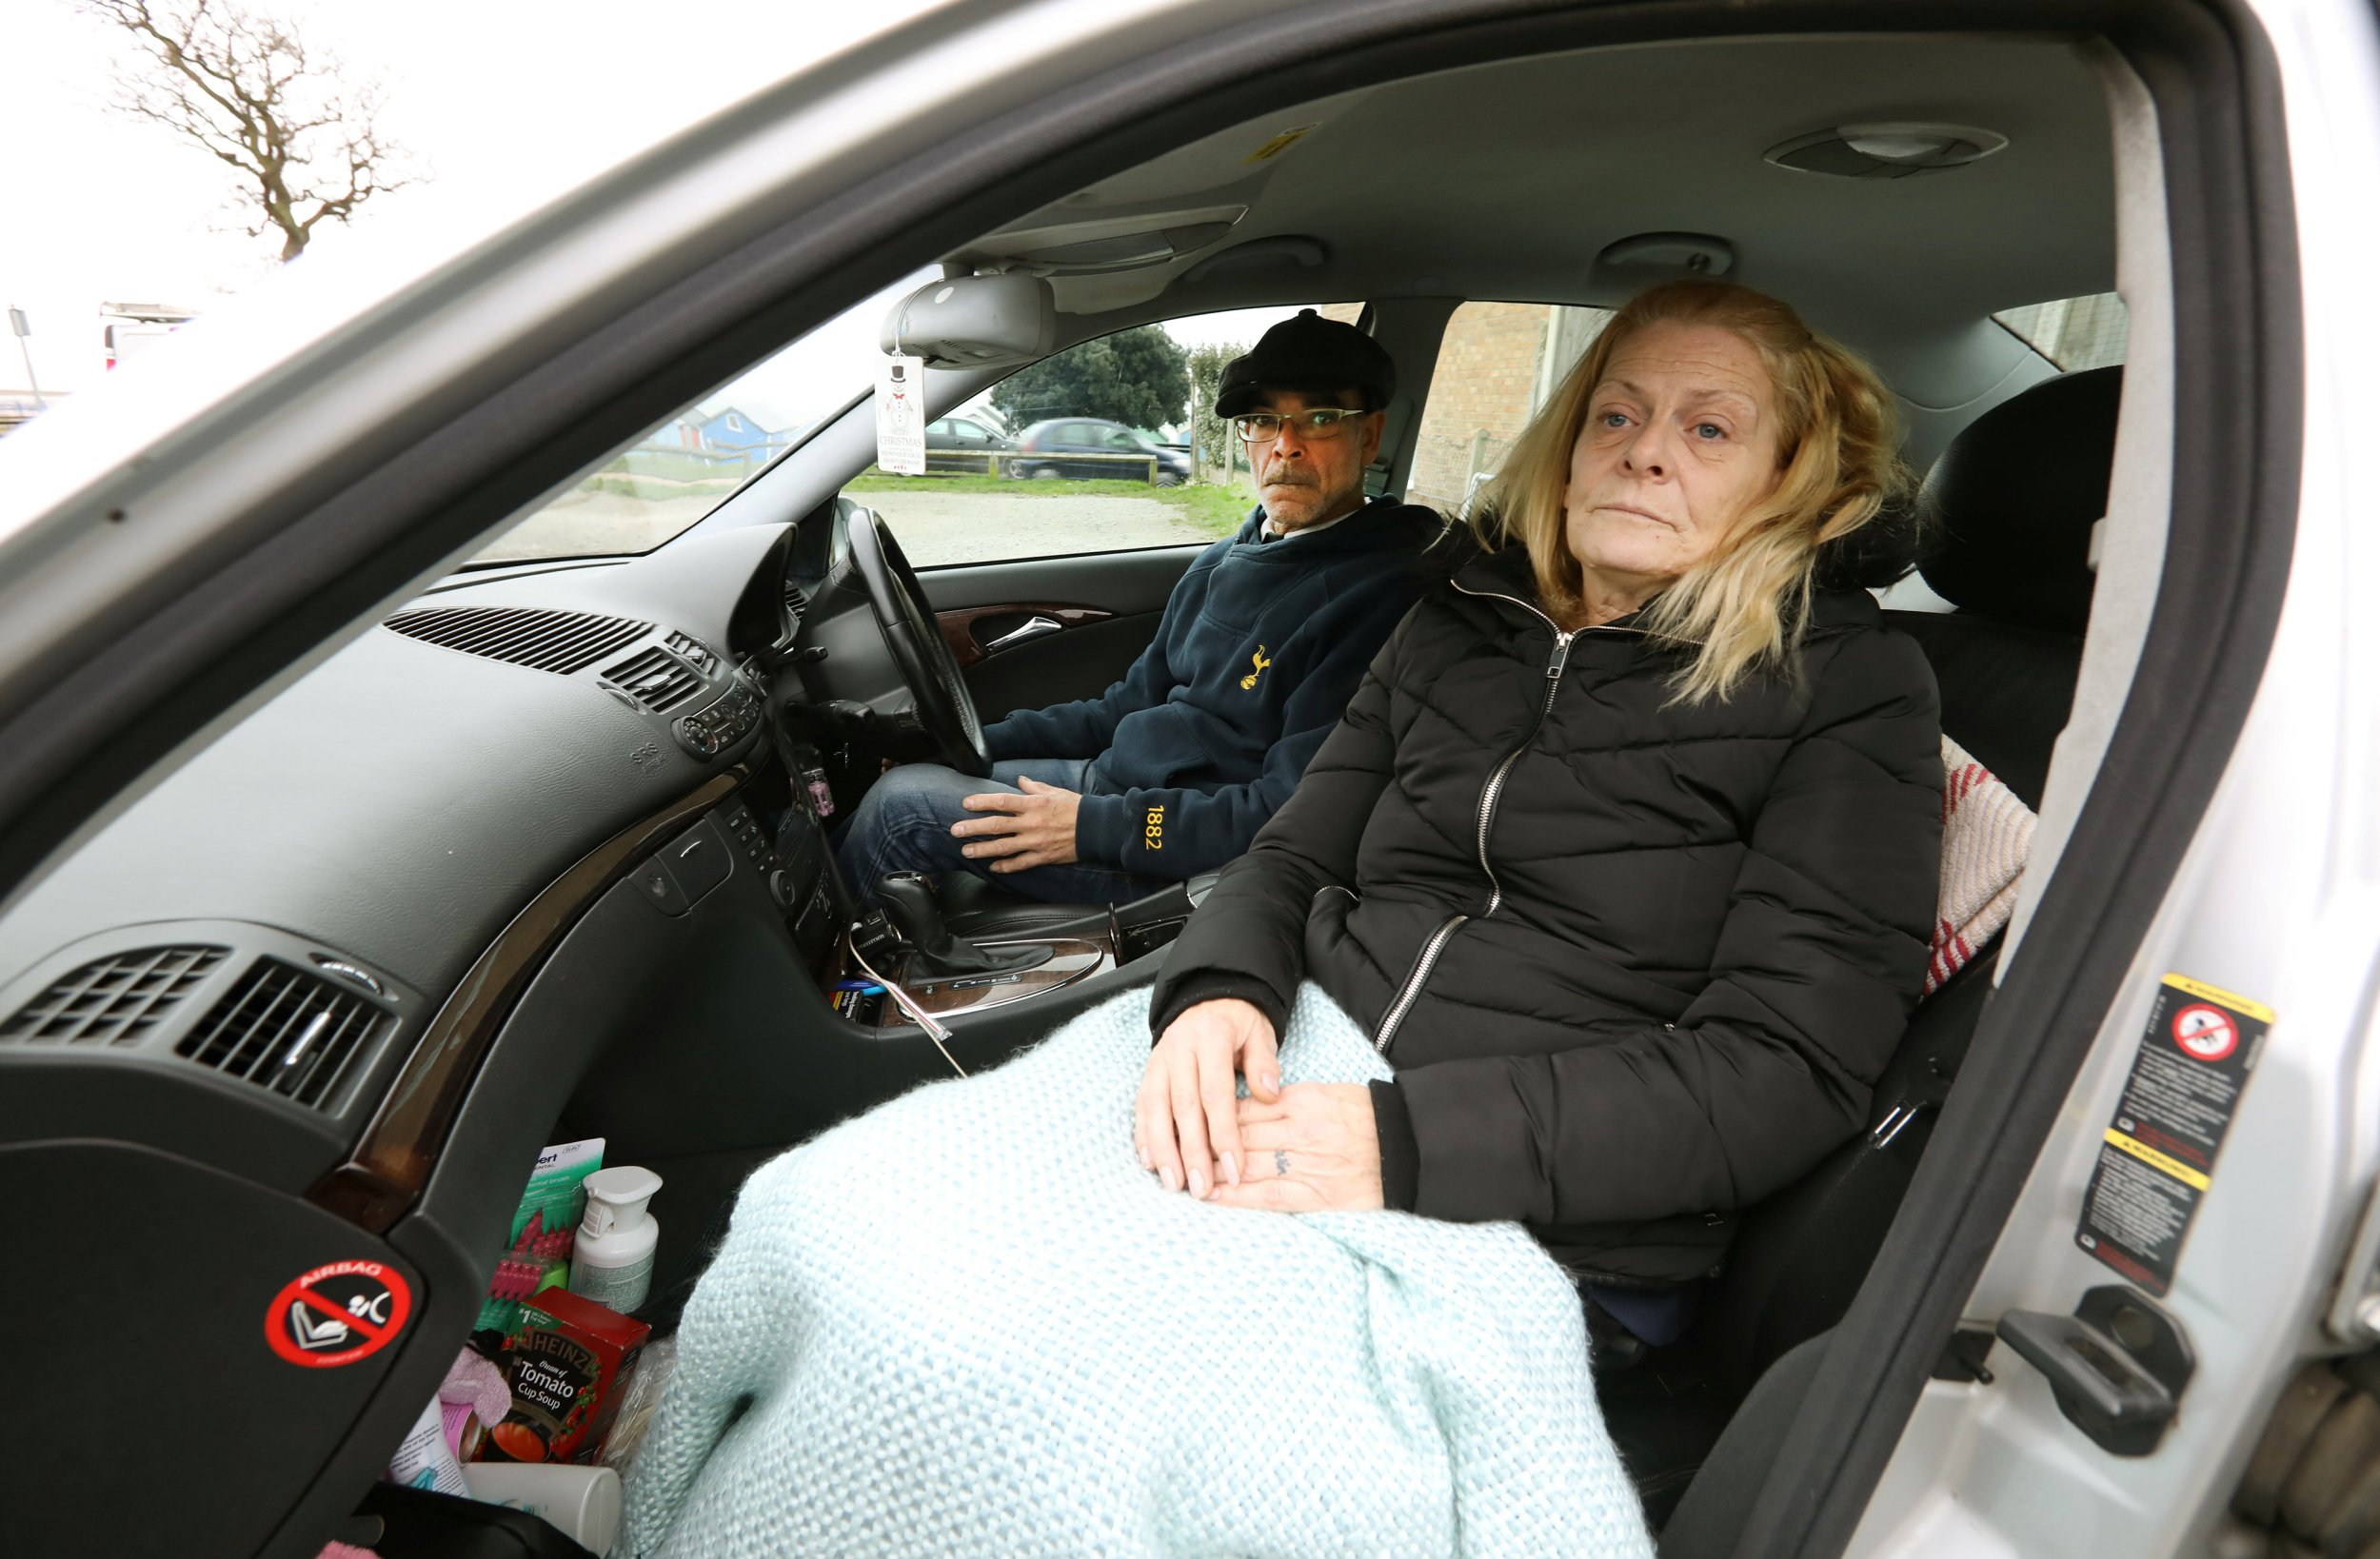 Couple forced to live in car because they can't afford rent